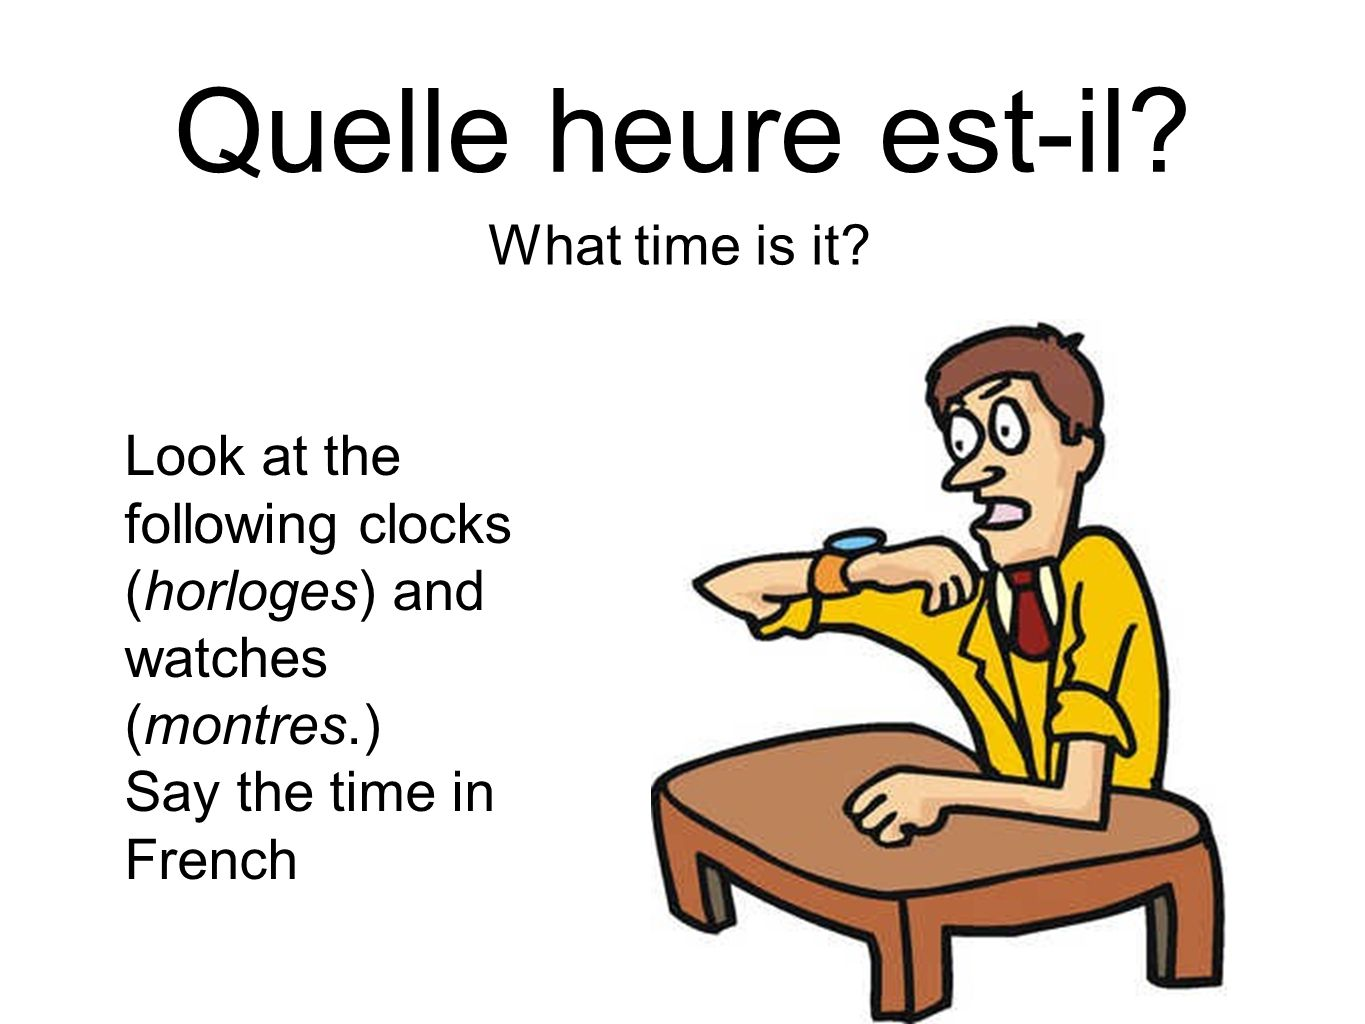 Quelle heure est-il? What time is it? Look at the following clocks (horloges) and watches (montres.) Say the time in French